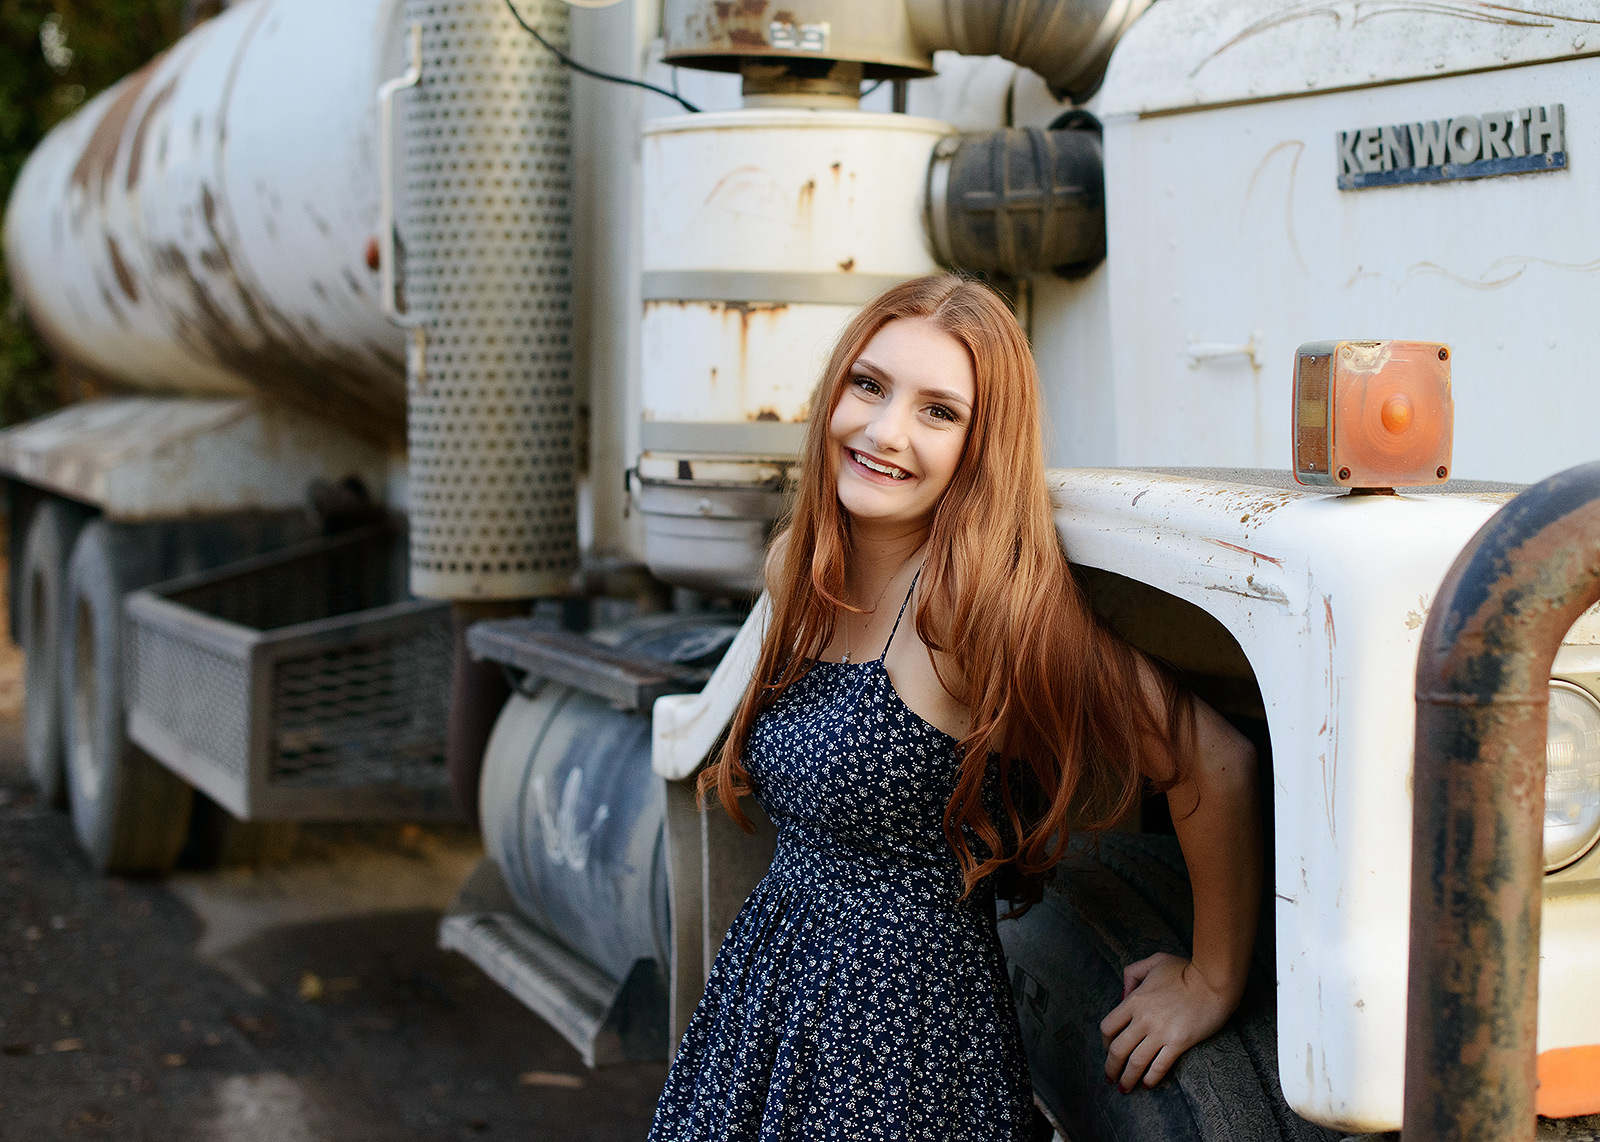 Senior High School Girl Next to White Truck Rig in Sacramento